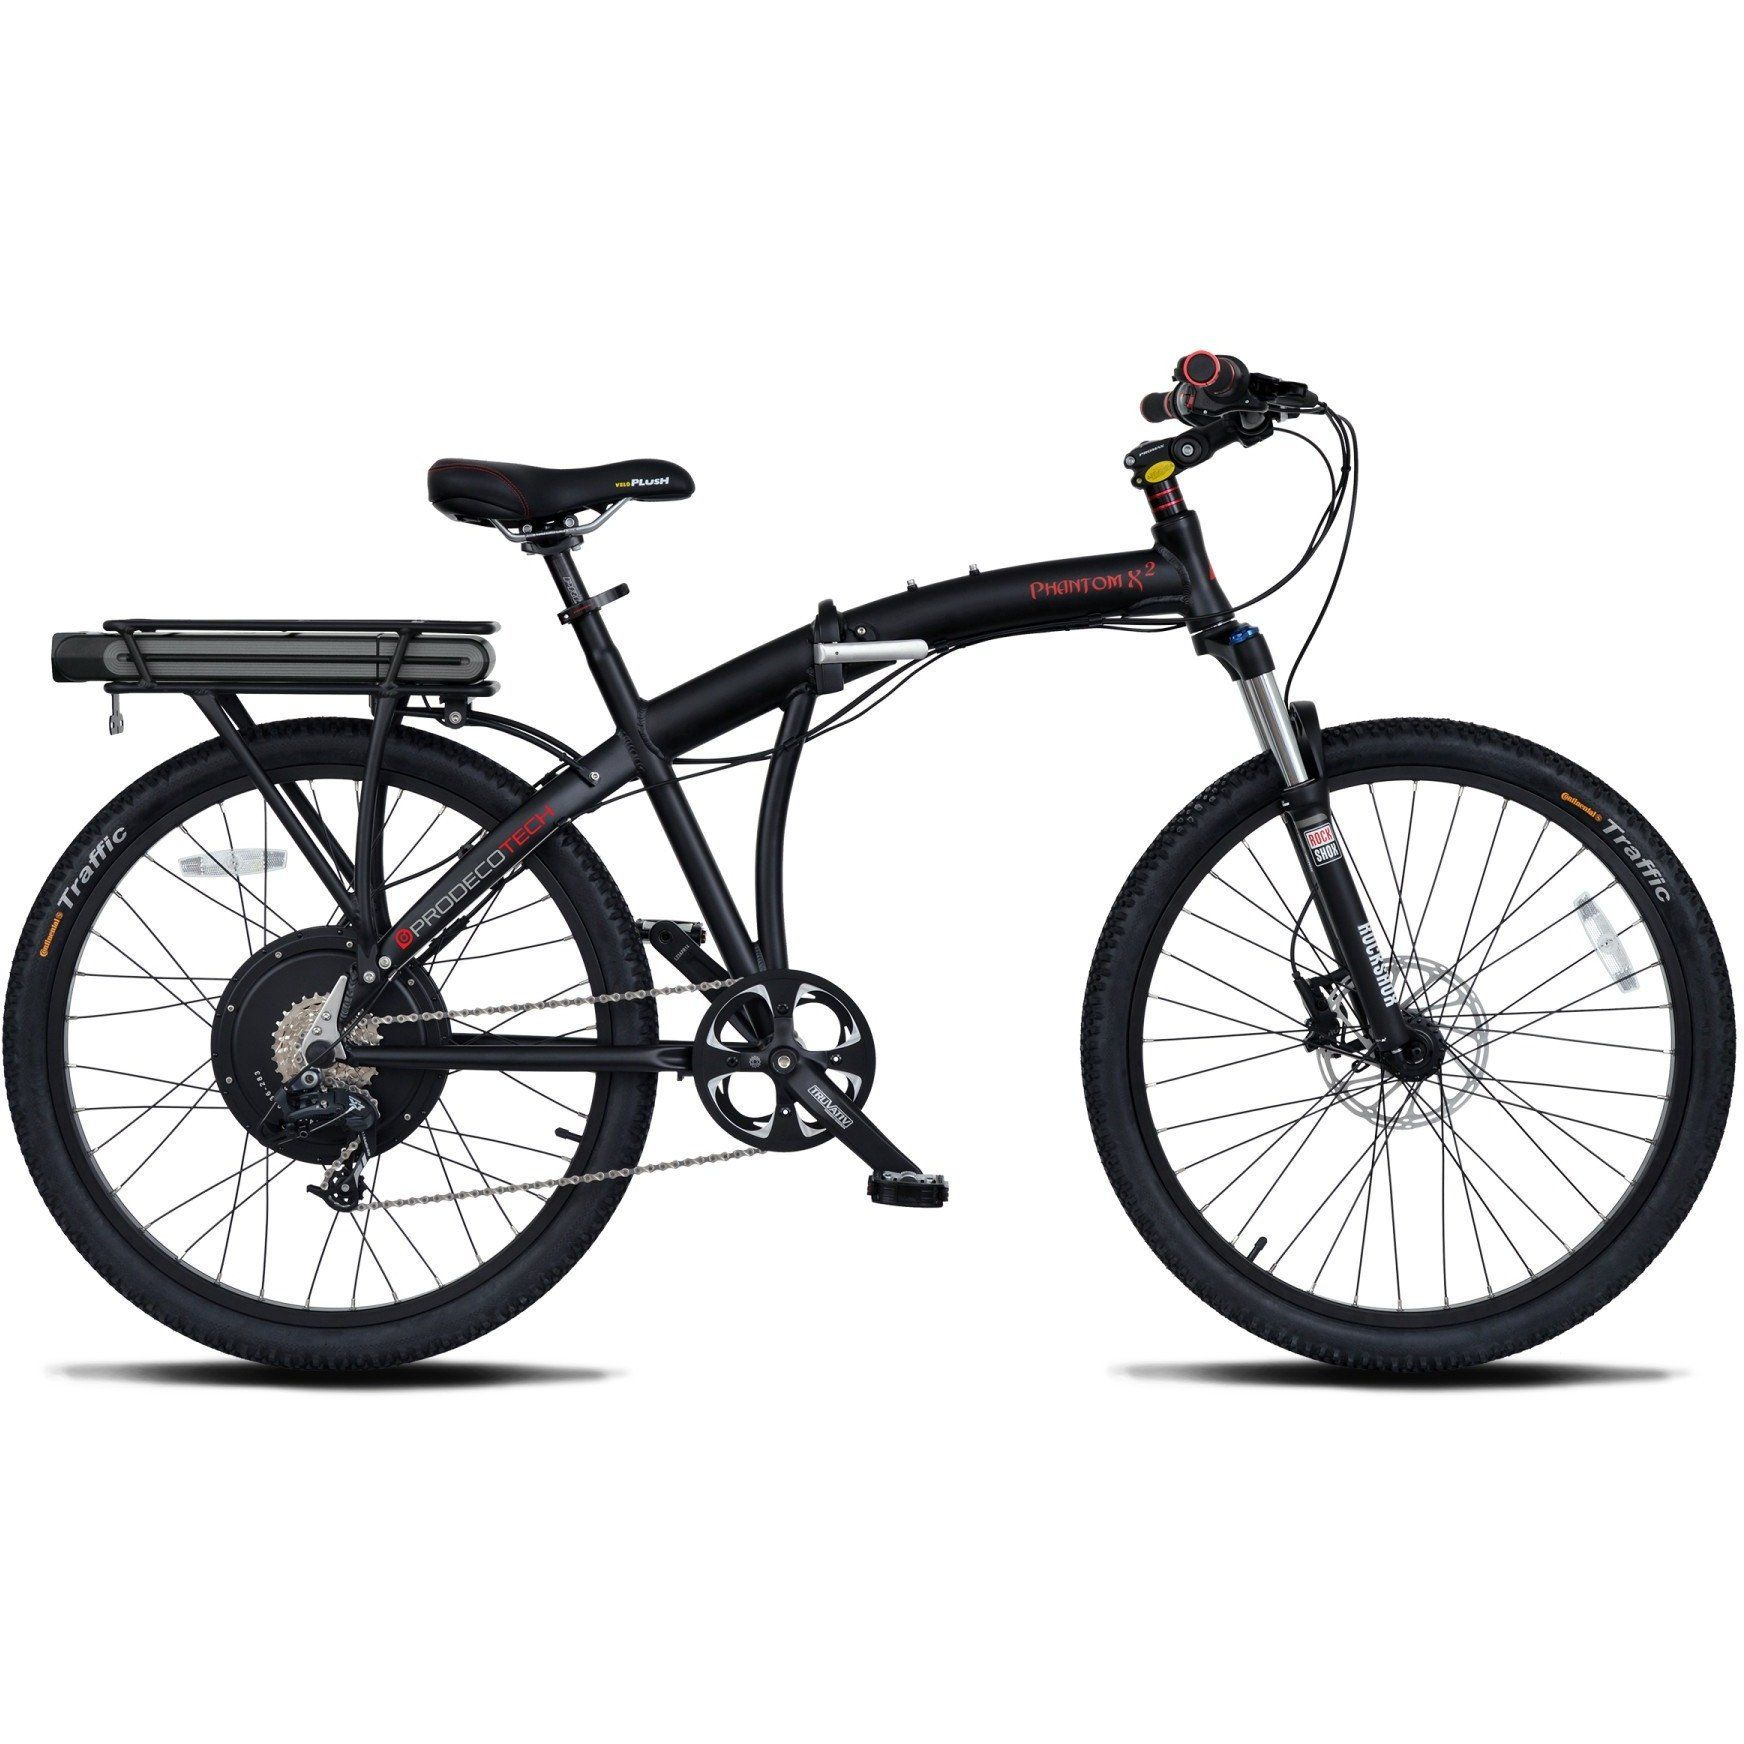 Furosystems Launches Two New Carbon E Bikes Folding And Mountain